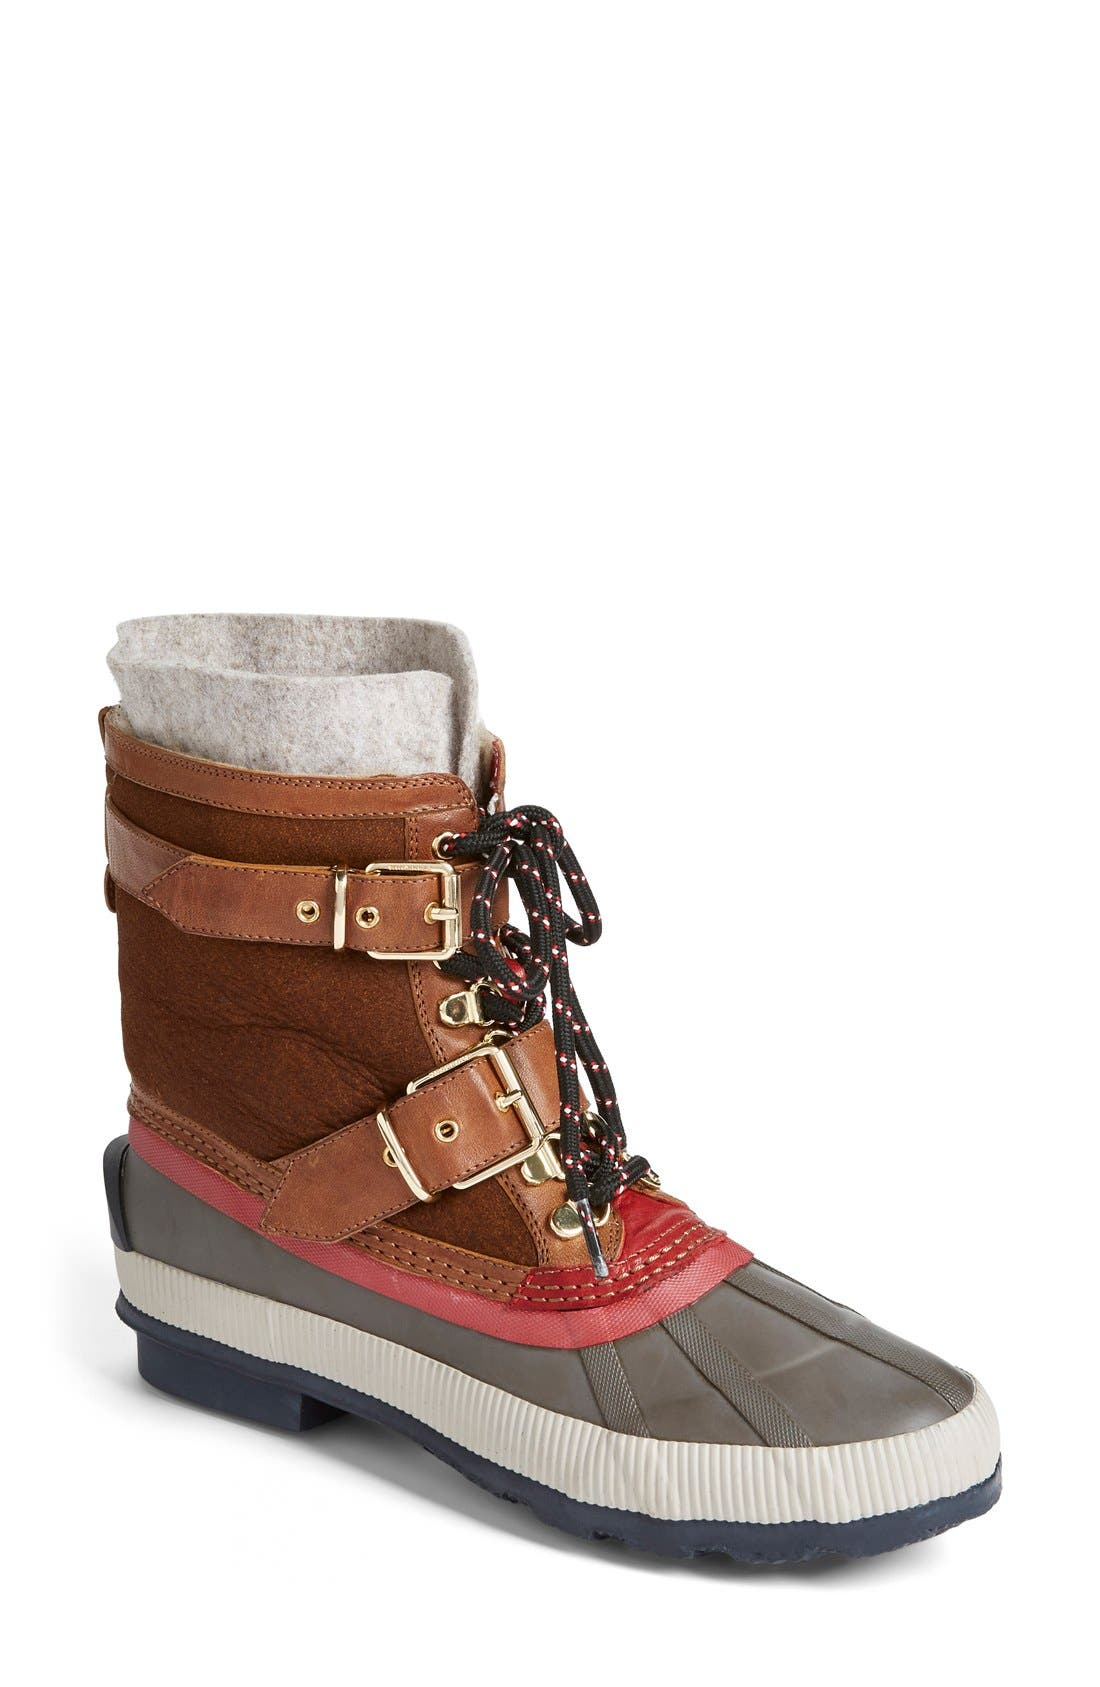 Alternate Image 1 Selected - Burberry 'Windmere' Boot (Women)